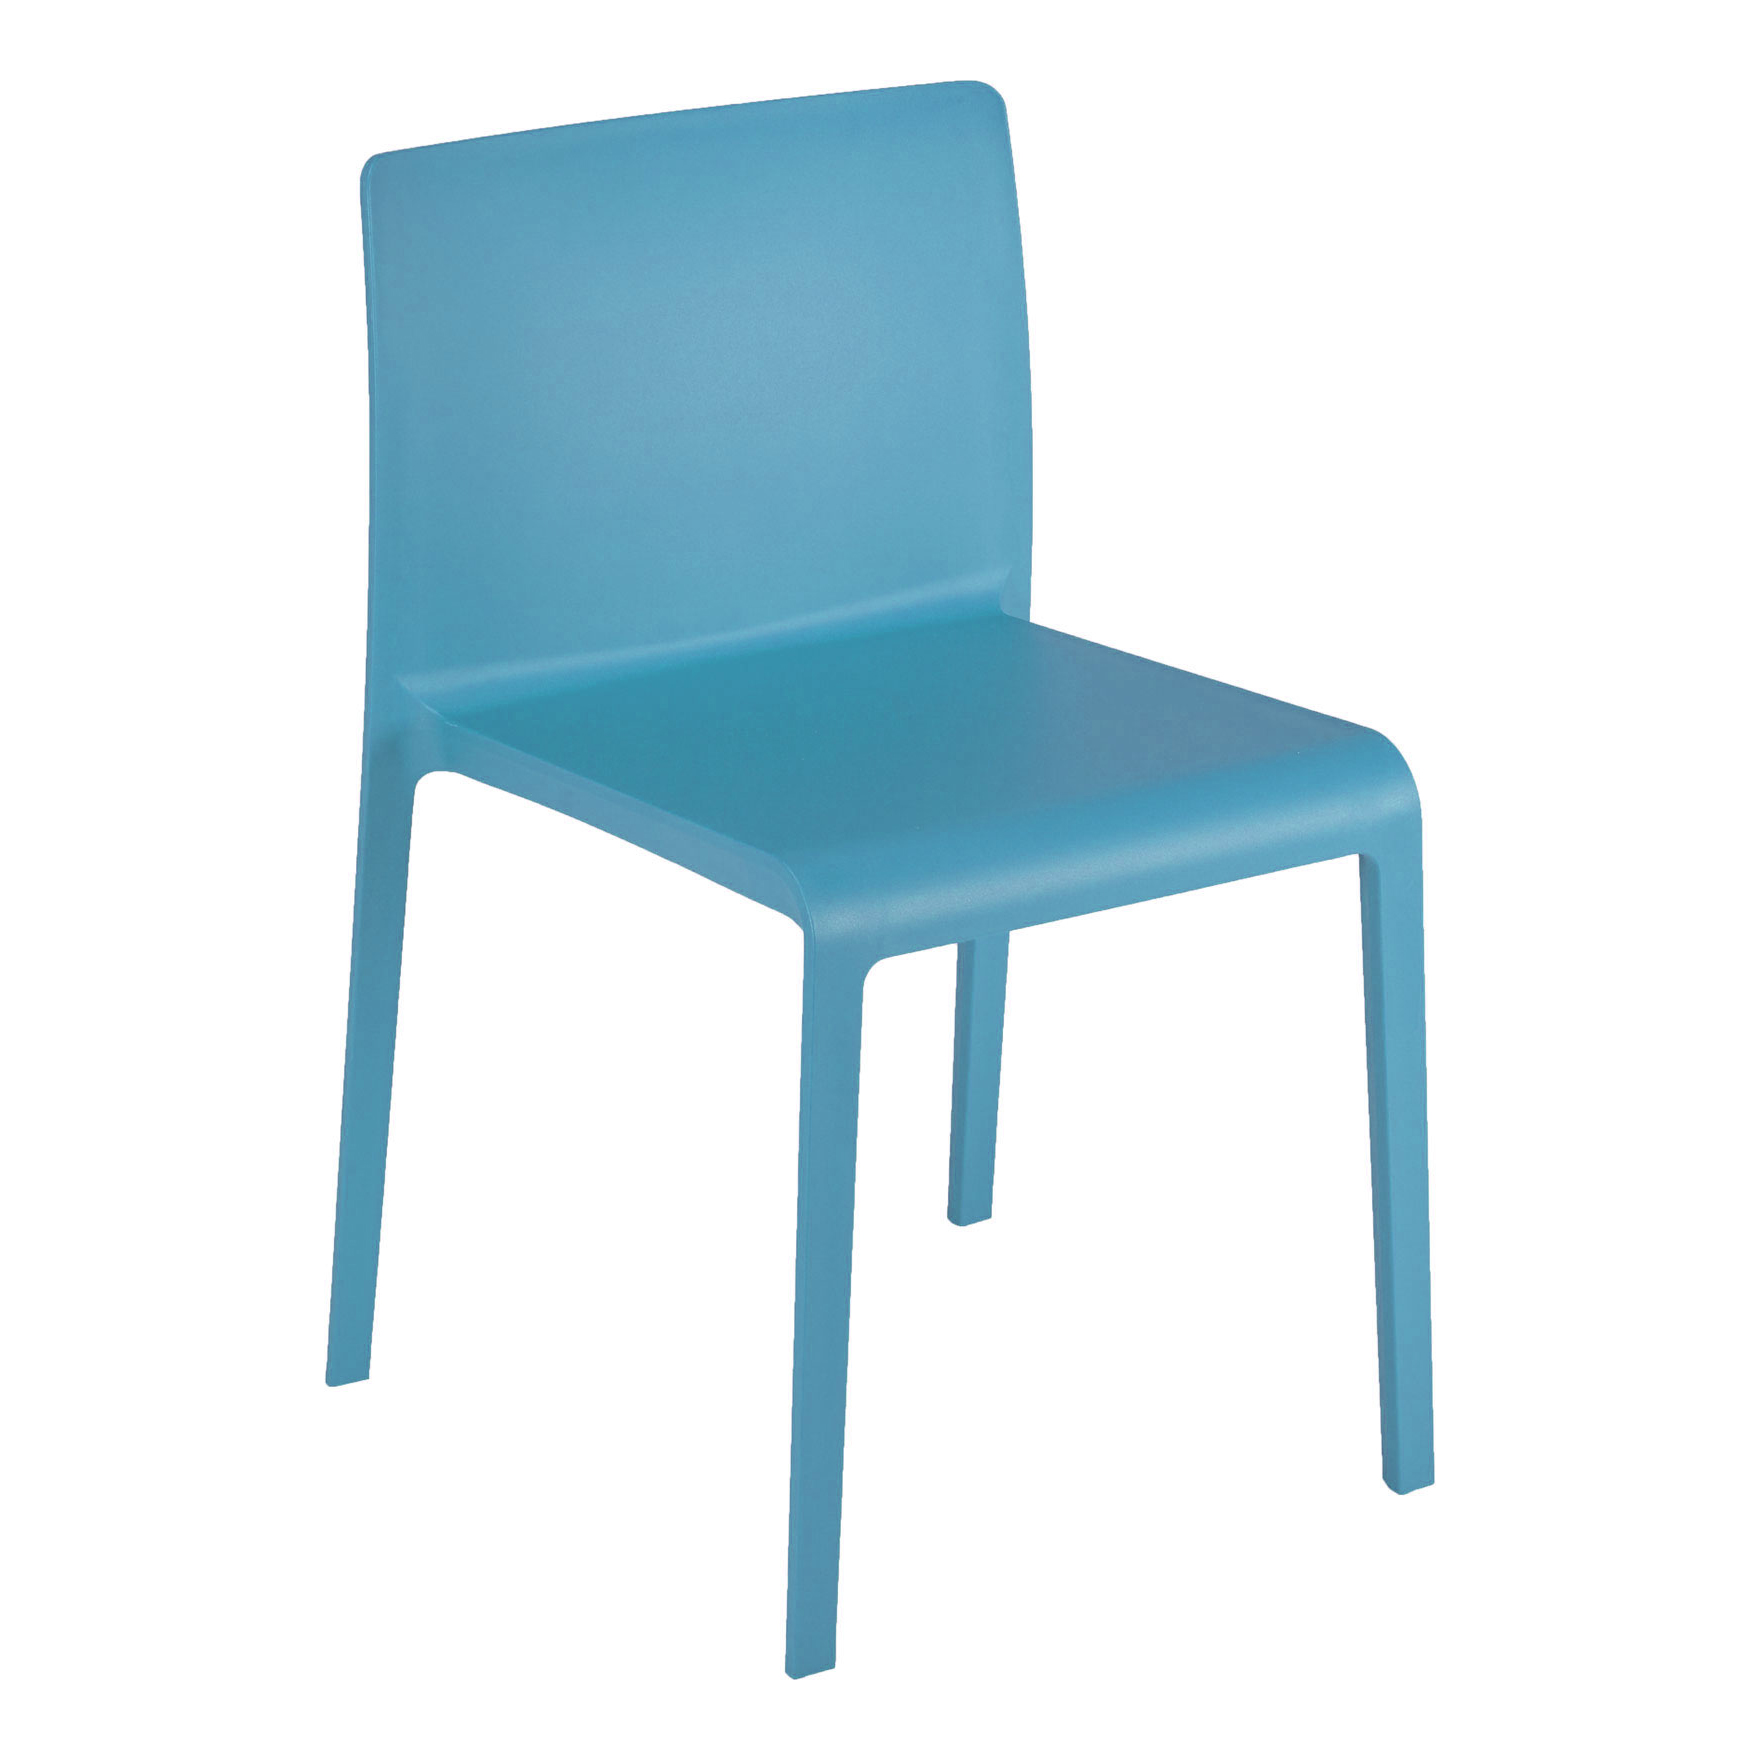 Florida Seating VOLT-S / BLUE chair, side, stacking, outdoor